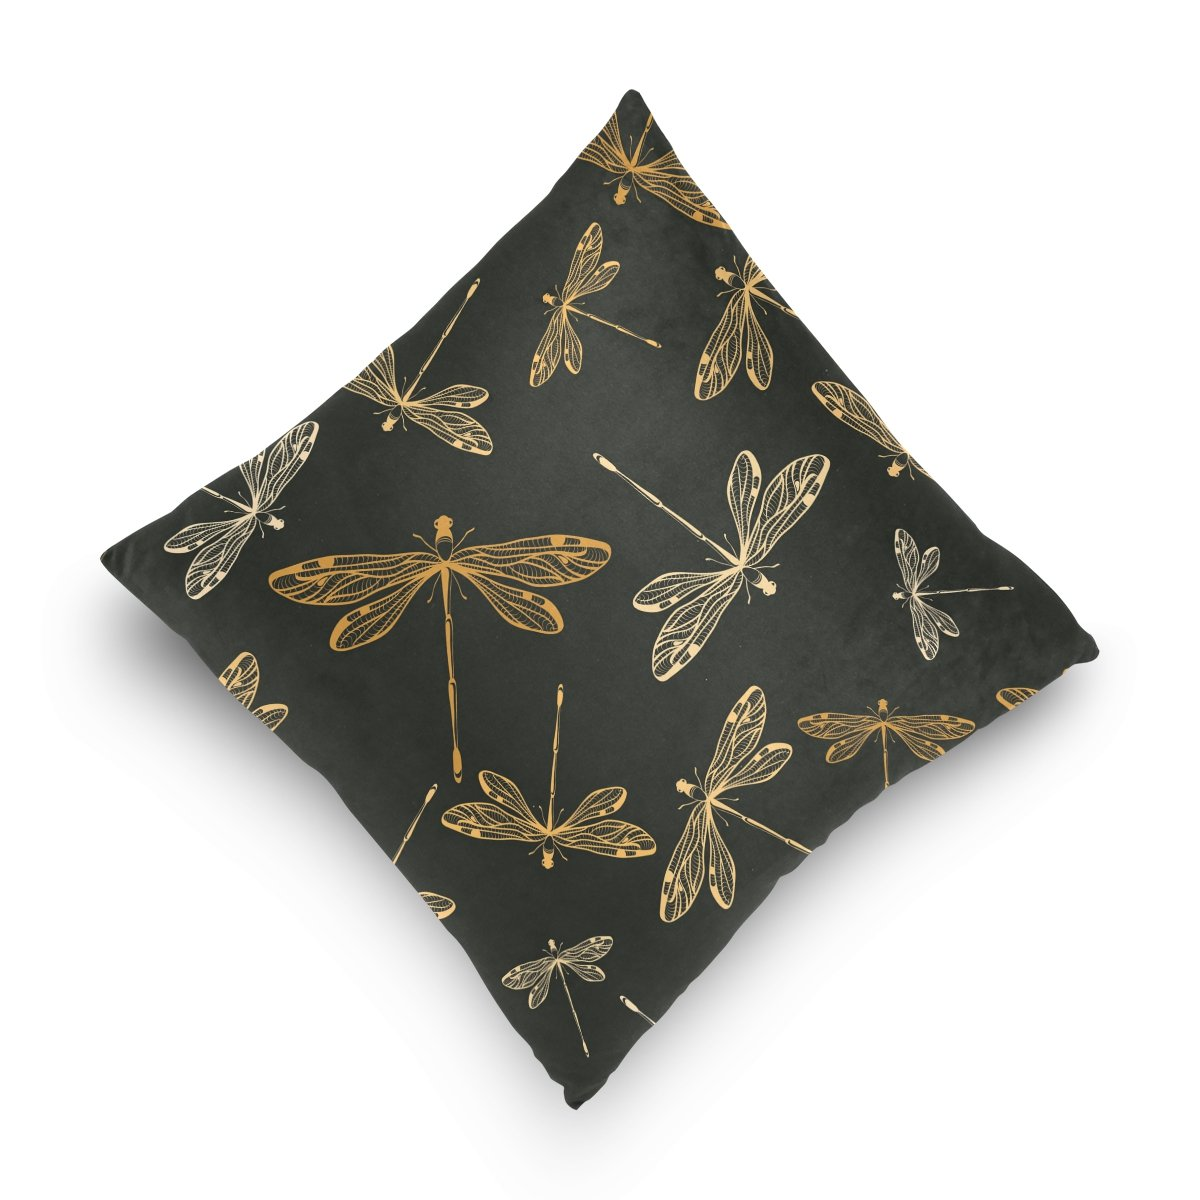 ALAZA Dragonflies Black Pillowcase for Living Room Sofa Car Decorative Cotton Linen Throw Pillow Case Cushion Cover Square 16 X 16 Inches